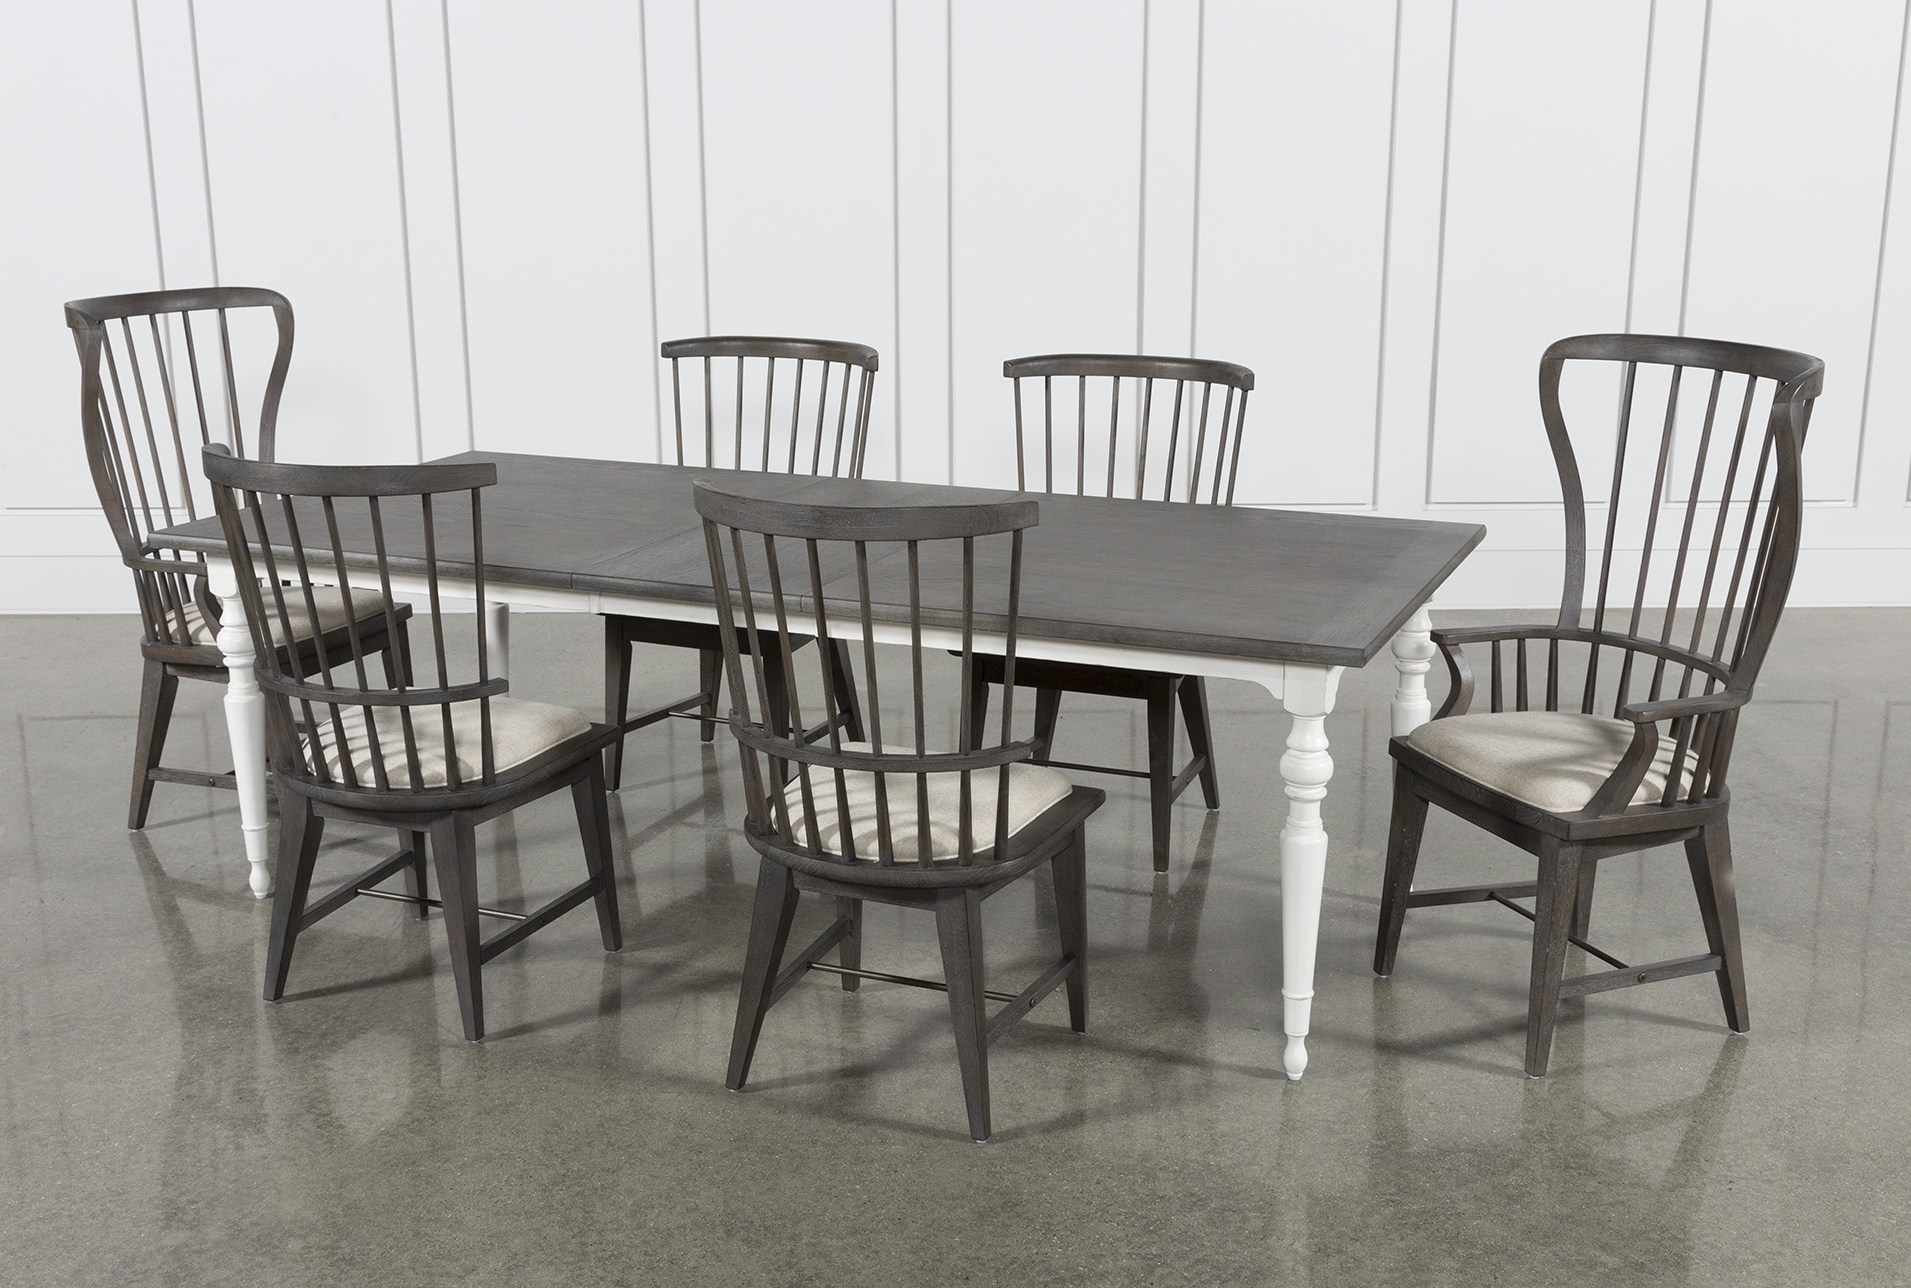 Products Intended For Well Liked Candice Ii 7 Piece Extension Rectangular Dining Sets With Slat Back Side Chairs (Gallery 2 of 25)